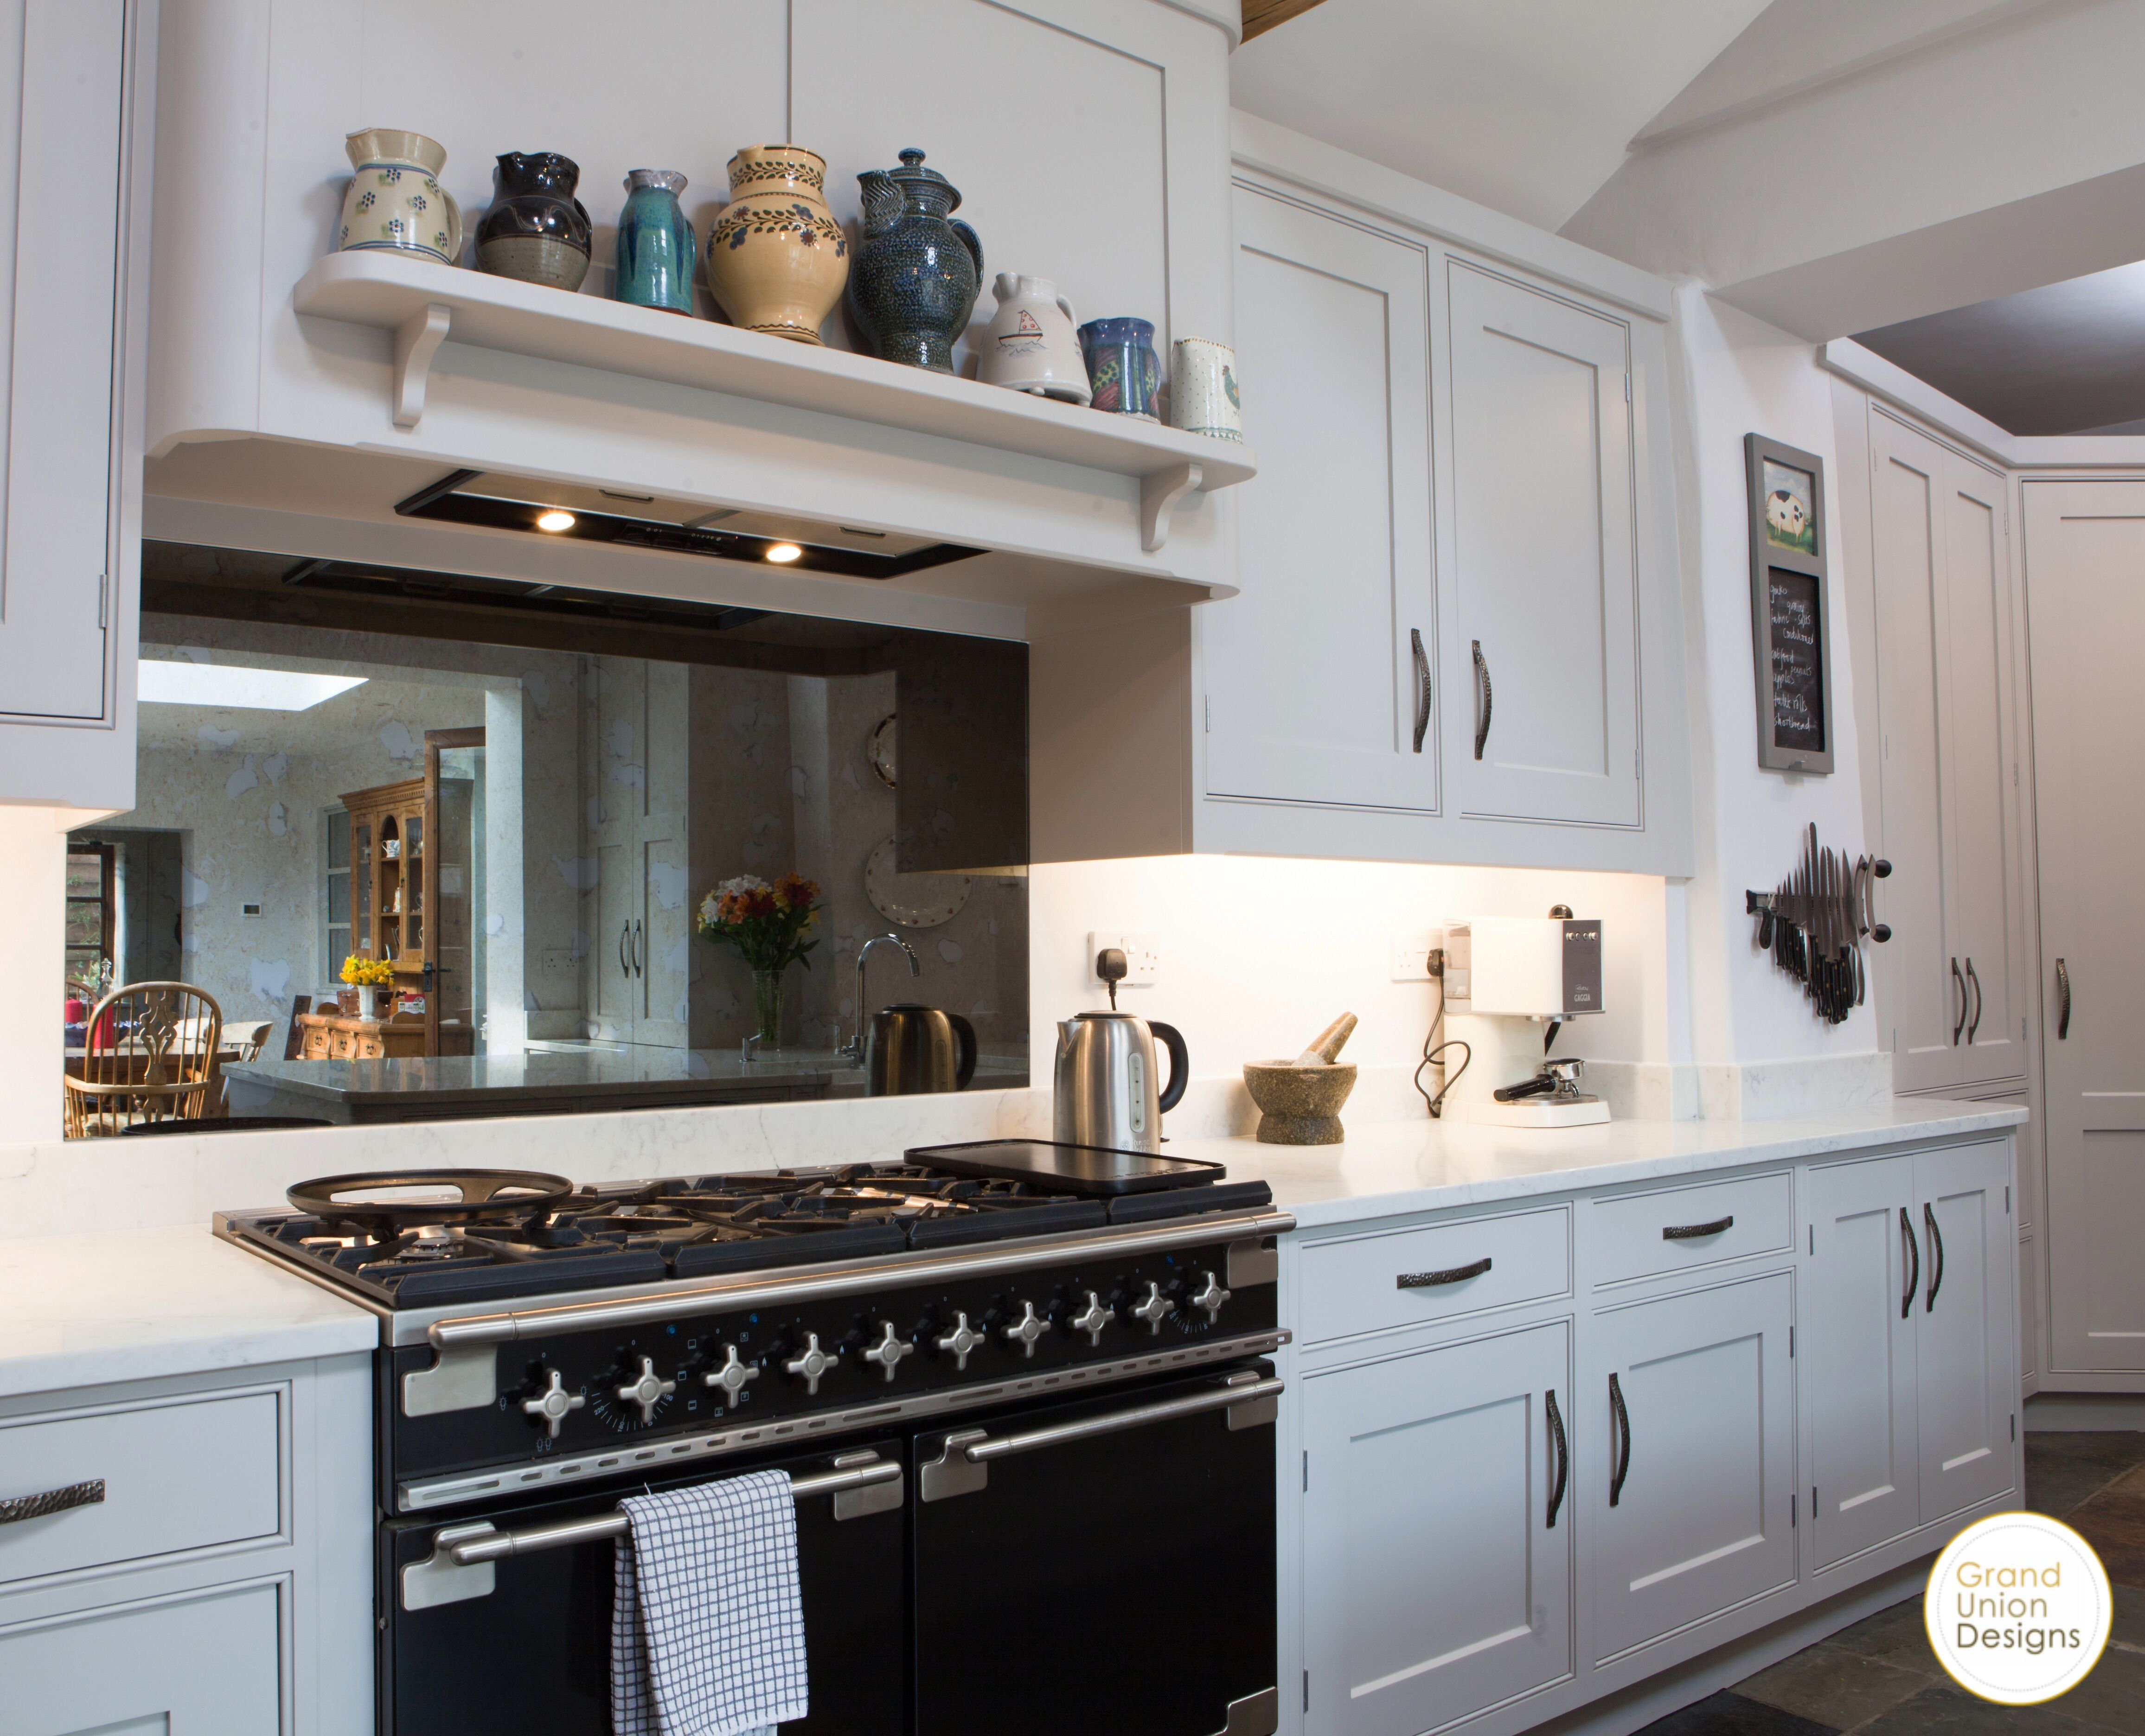 Painted kitchen in a North Buckinghamshire farm house. The